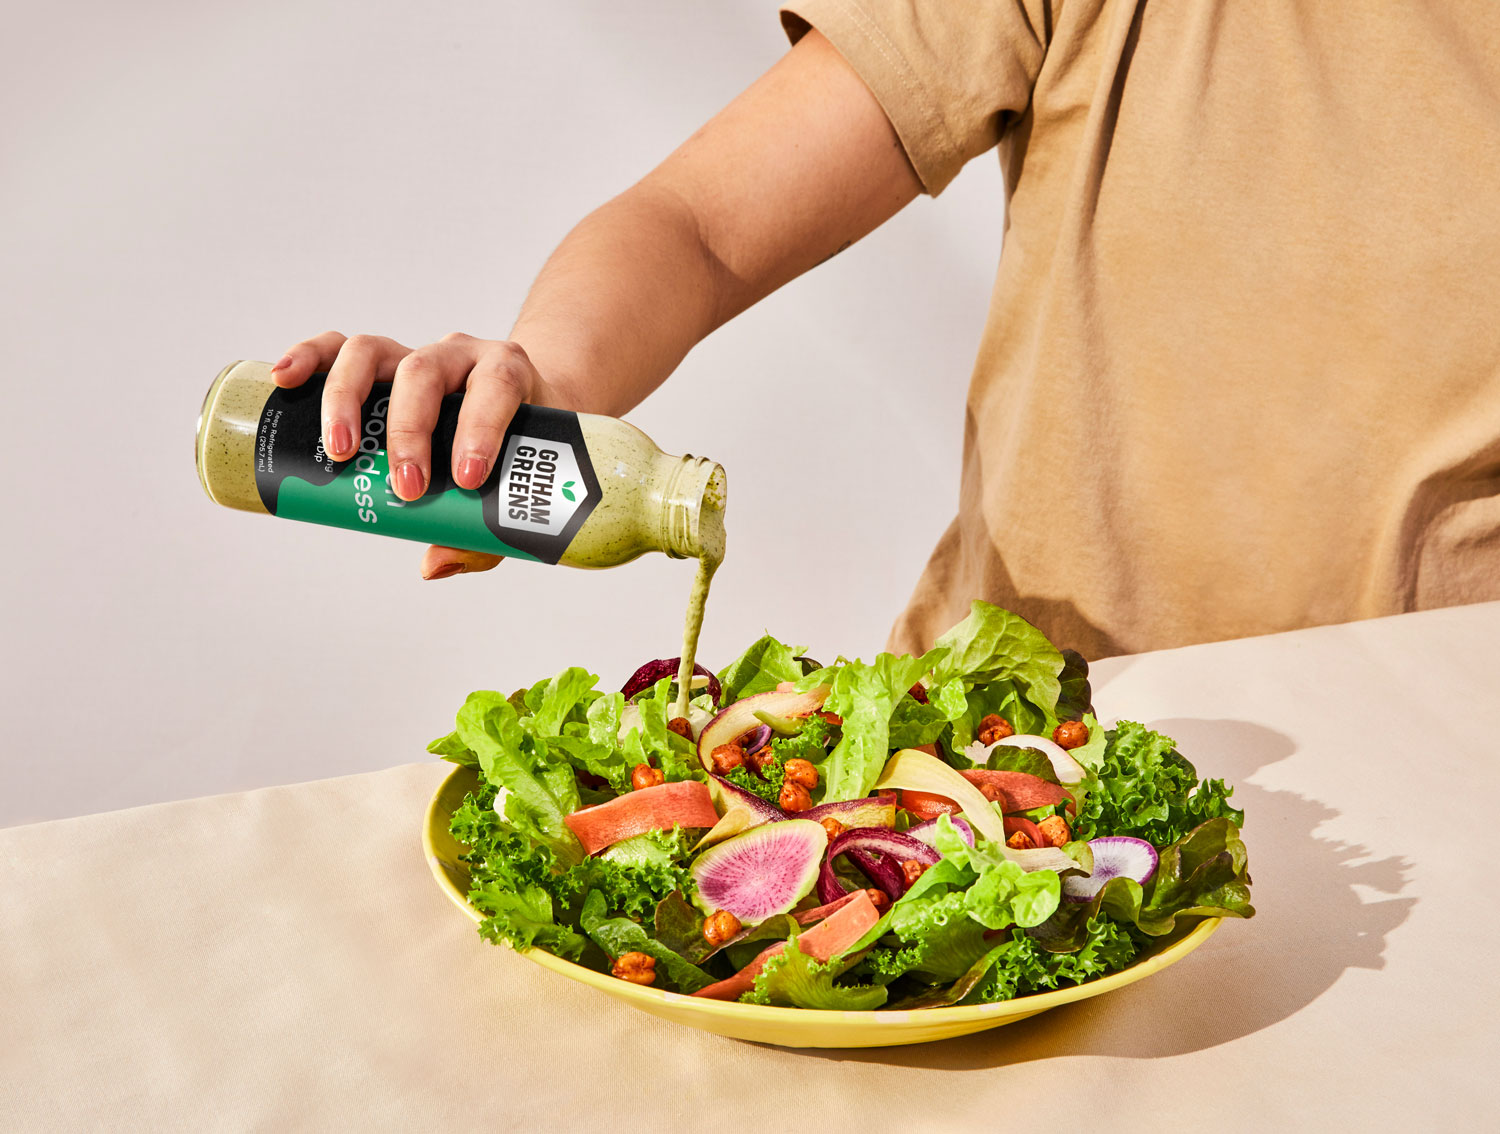 A person pouring dressing on a salad.